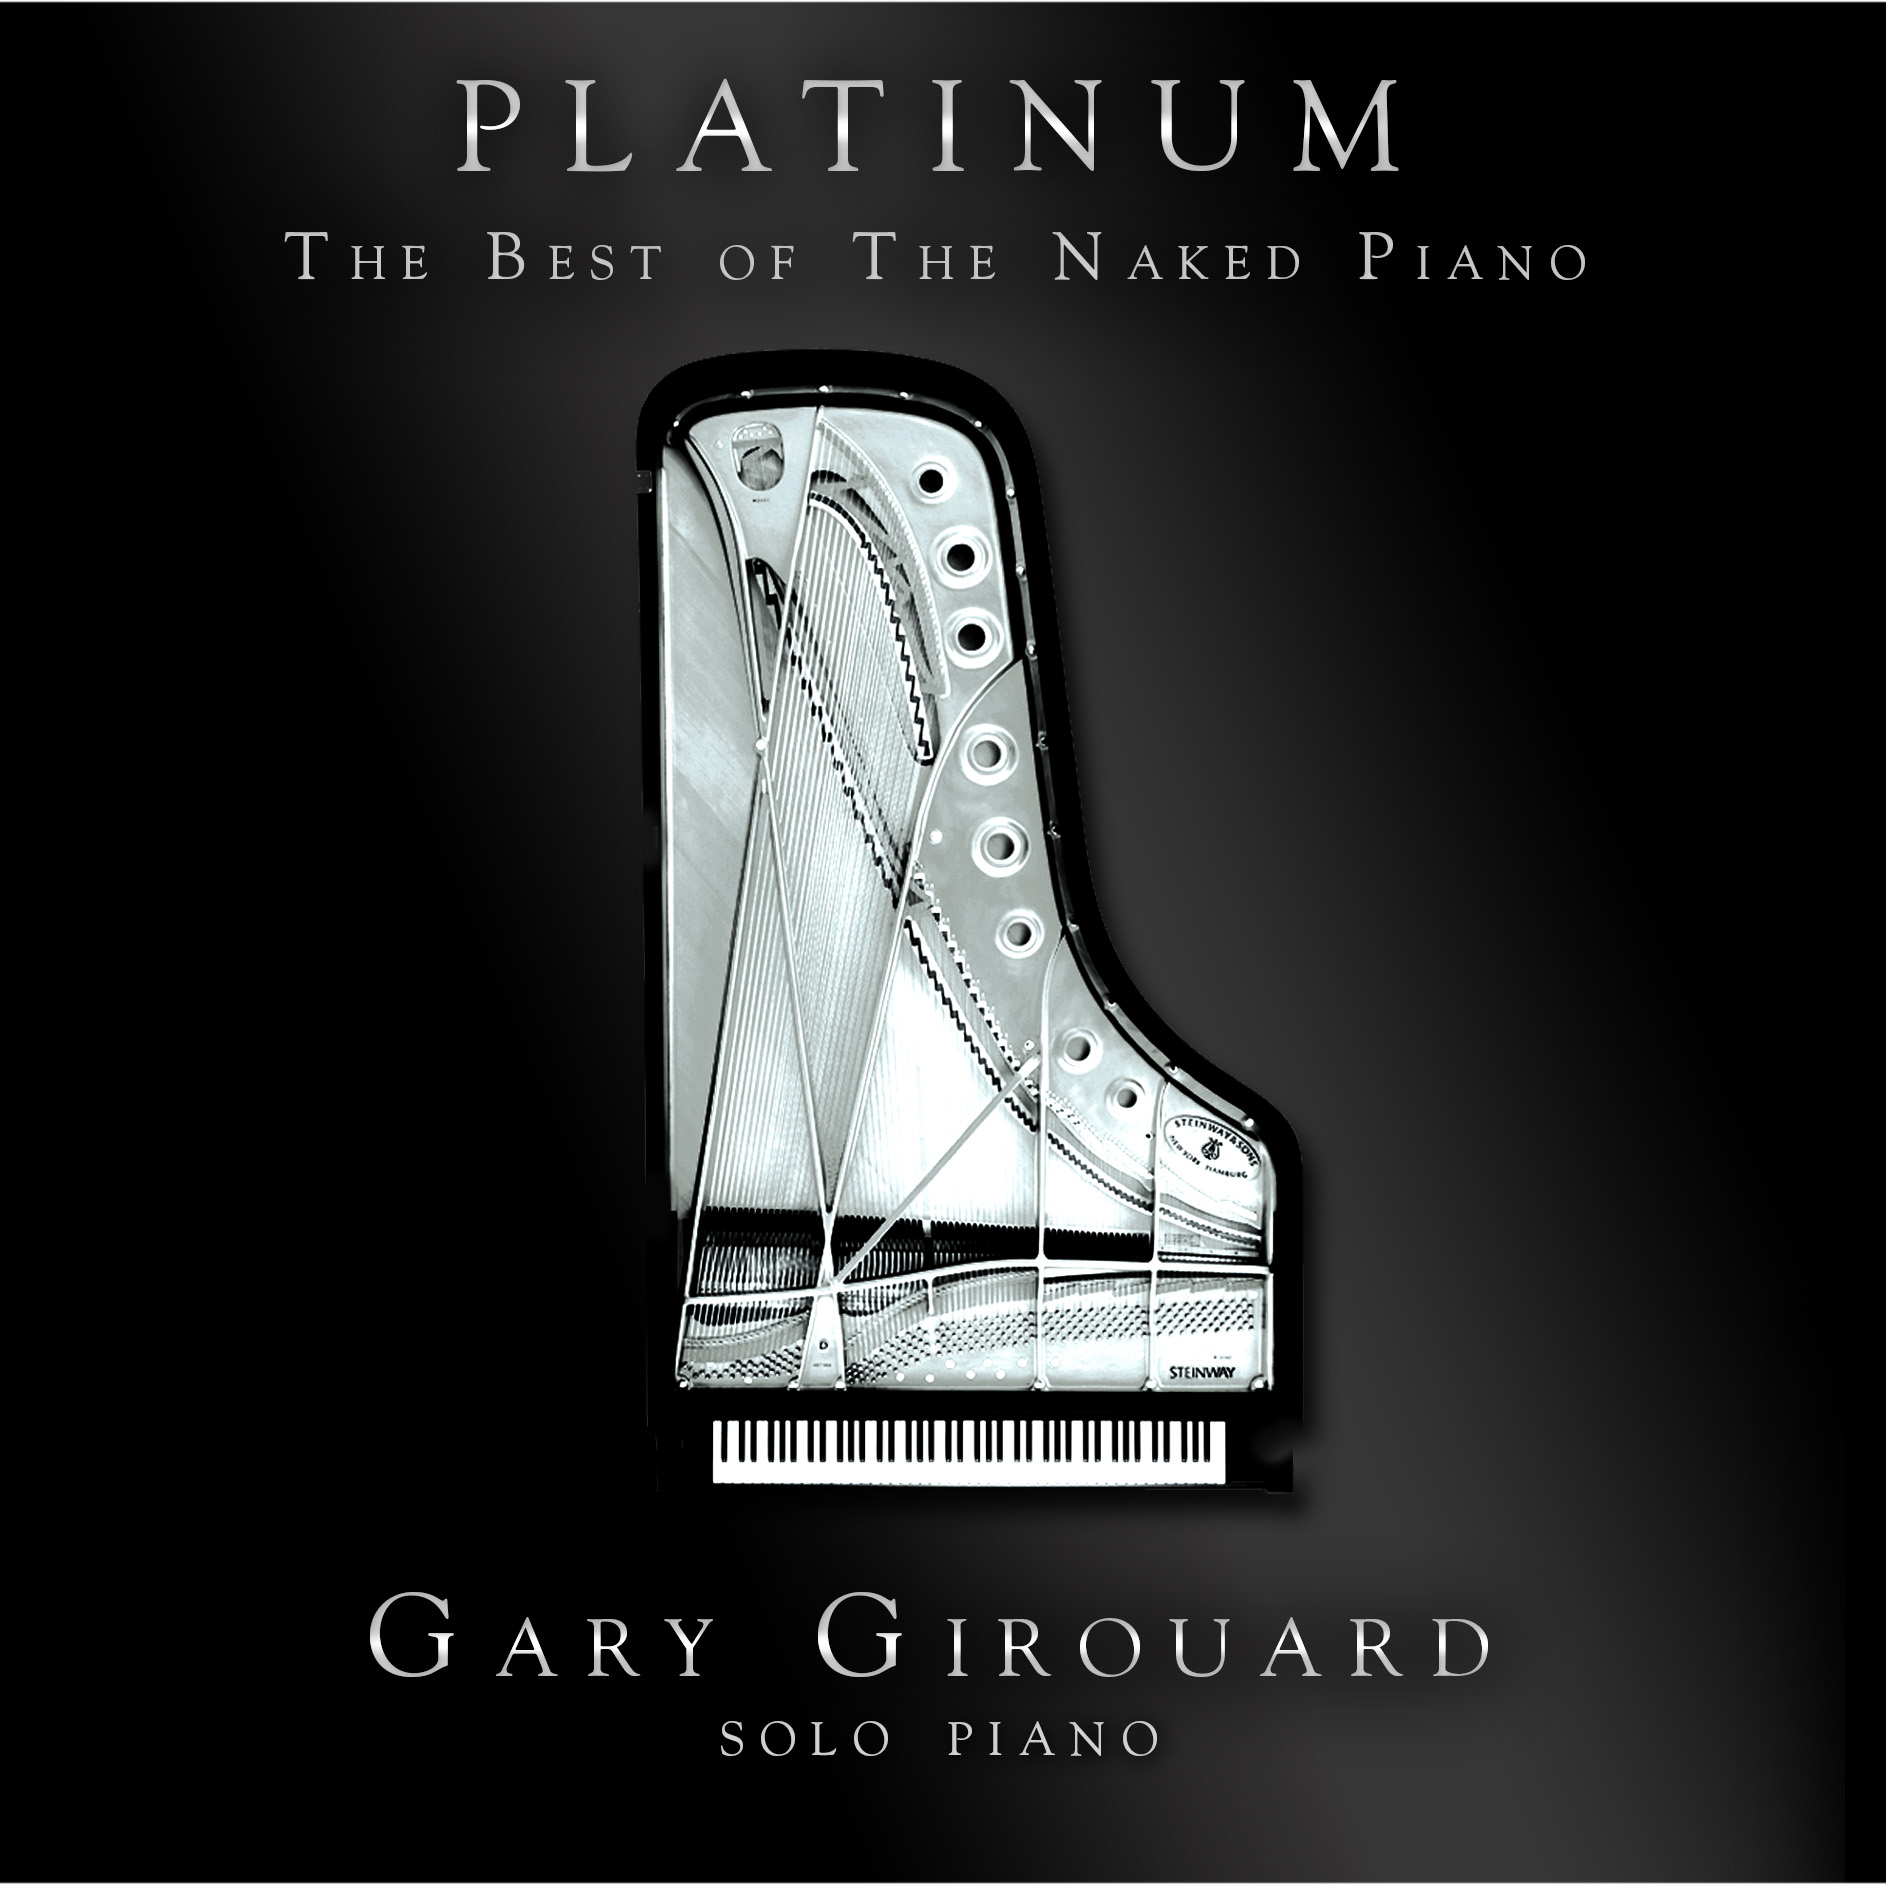 Platinum (Best of The Naked Piano) COLLECTION (includes Physical Album, Songbook, MP3 and PDF)